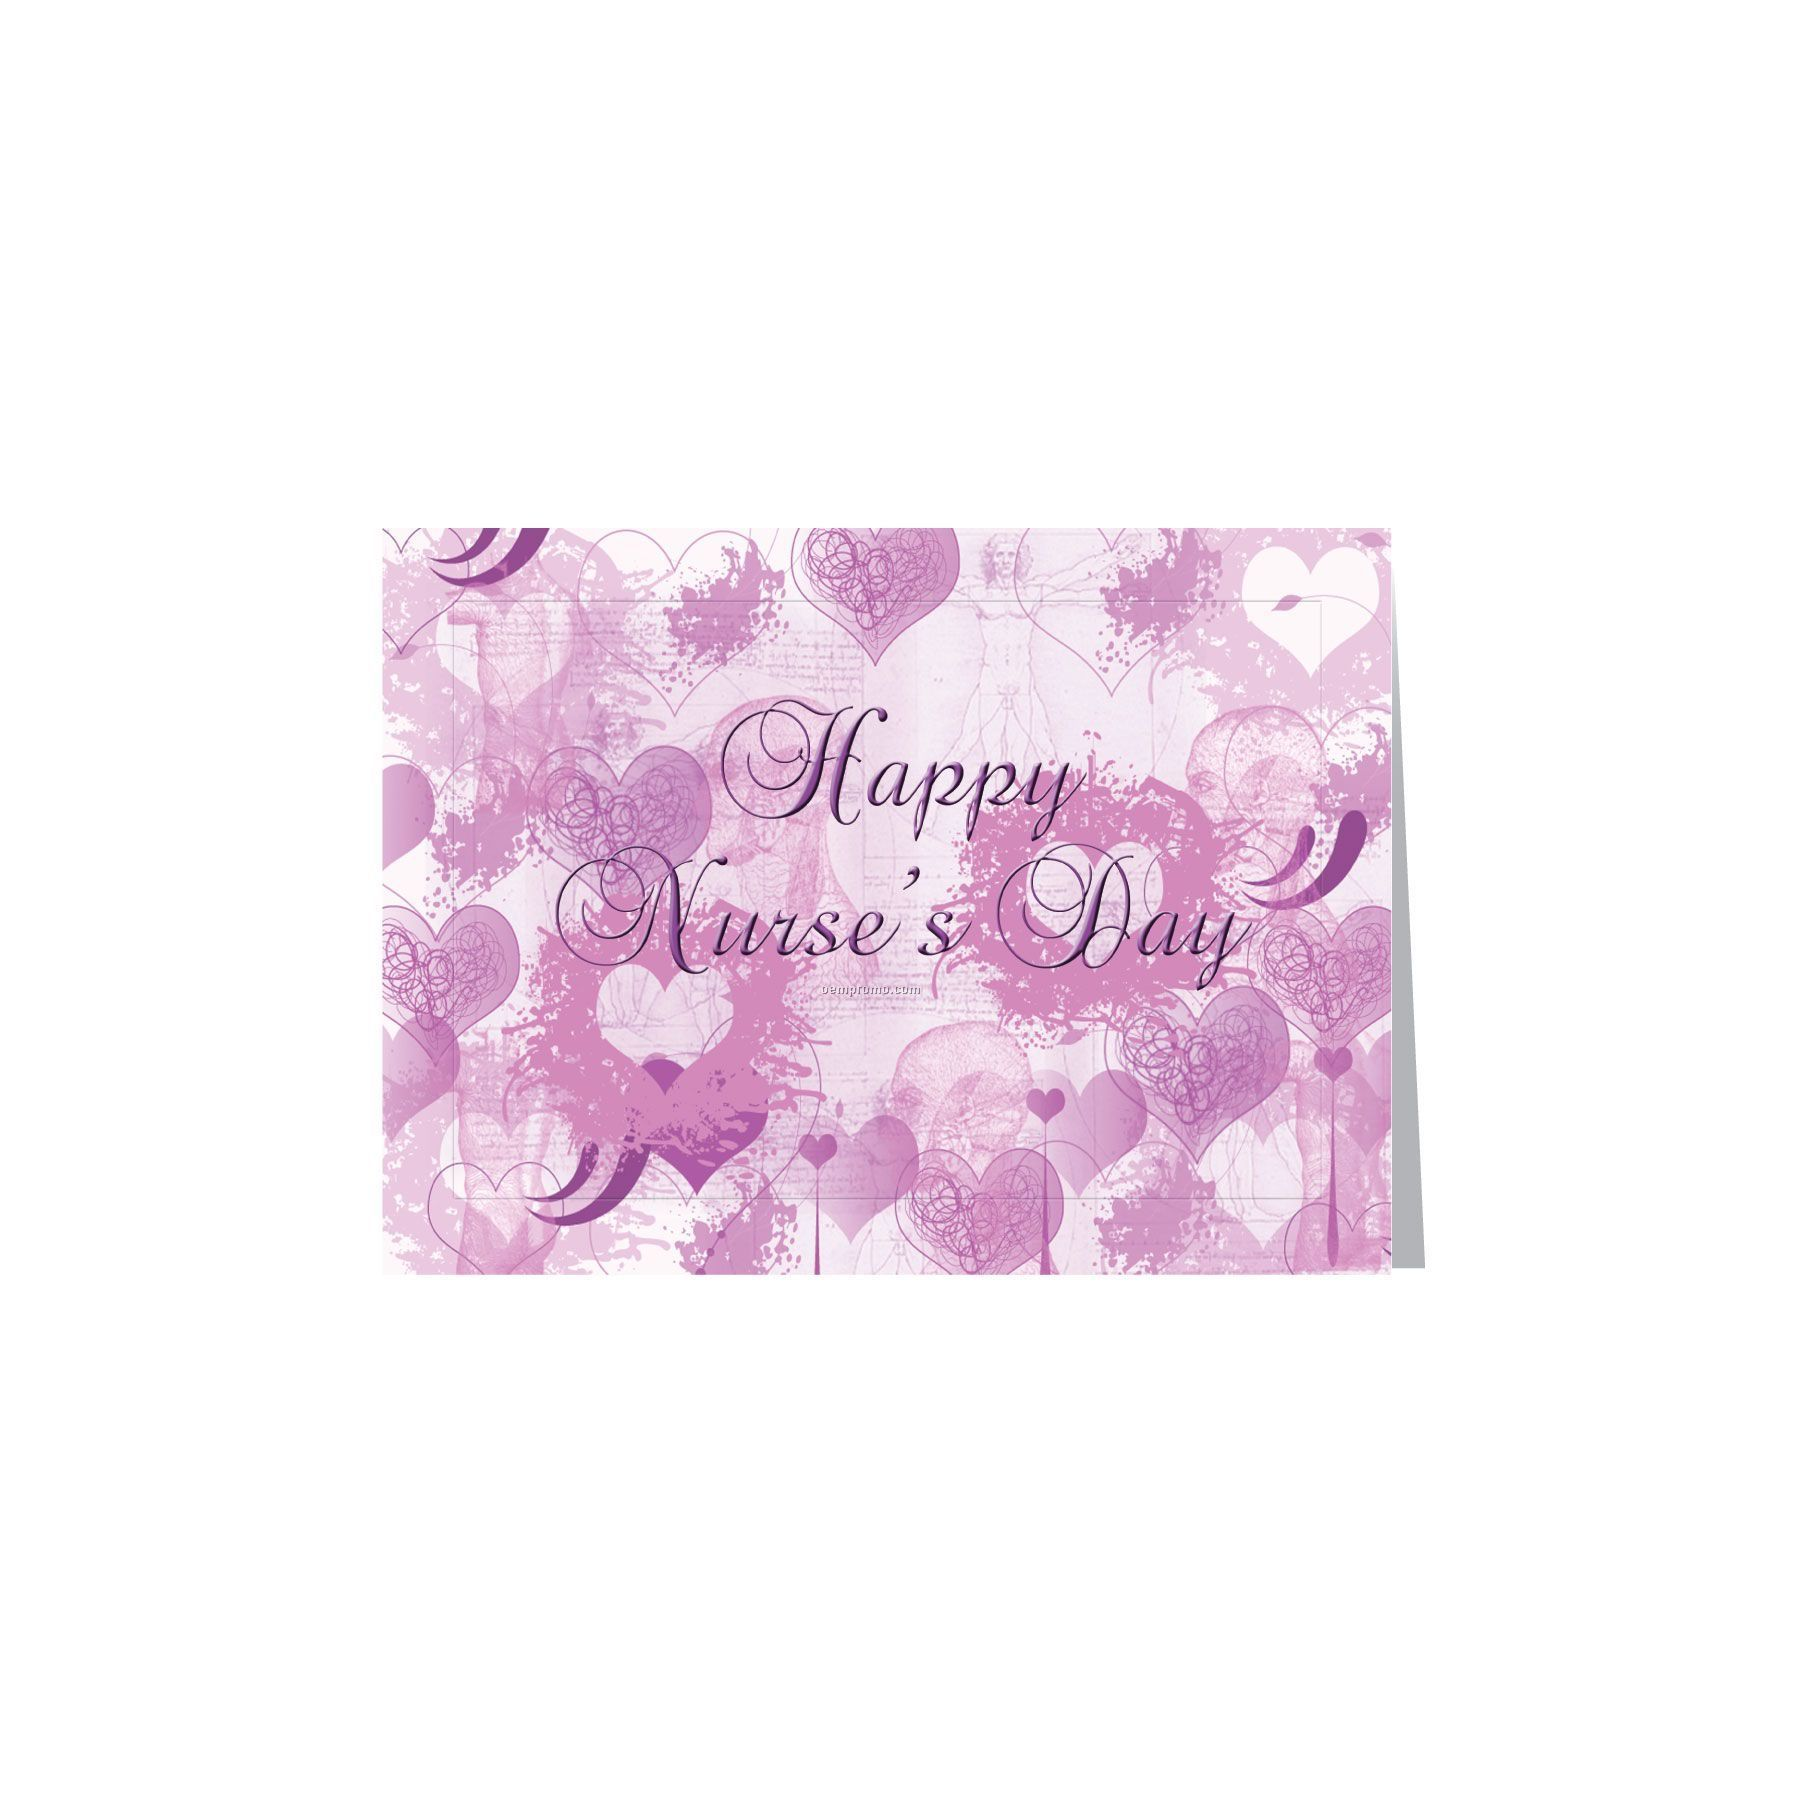 Happy nurses day heart greeting cardchina wholesale happy nurses happy nurses day heart greeting card m4hsunfo Image collections